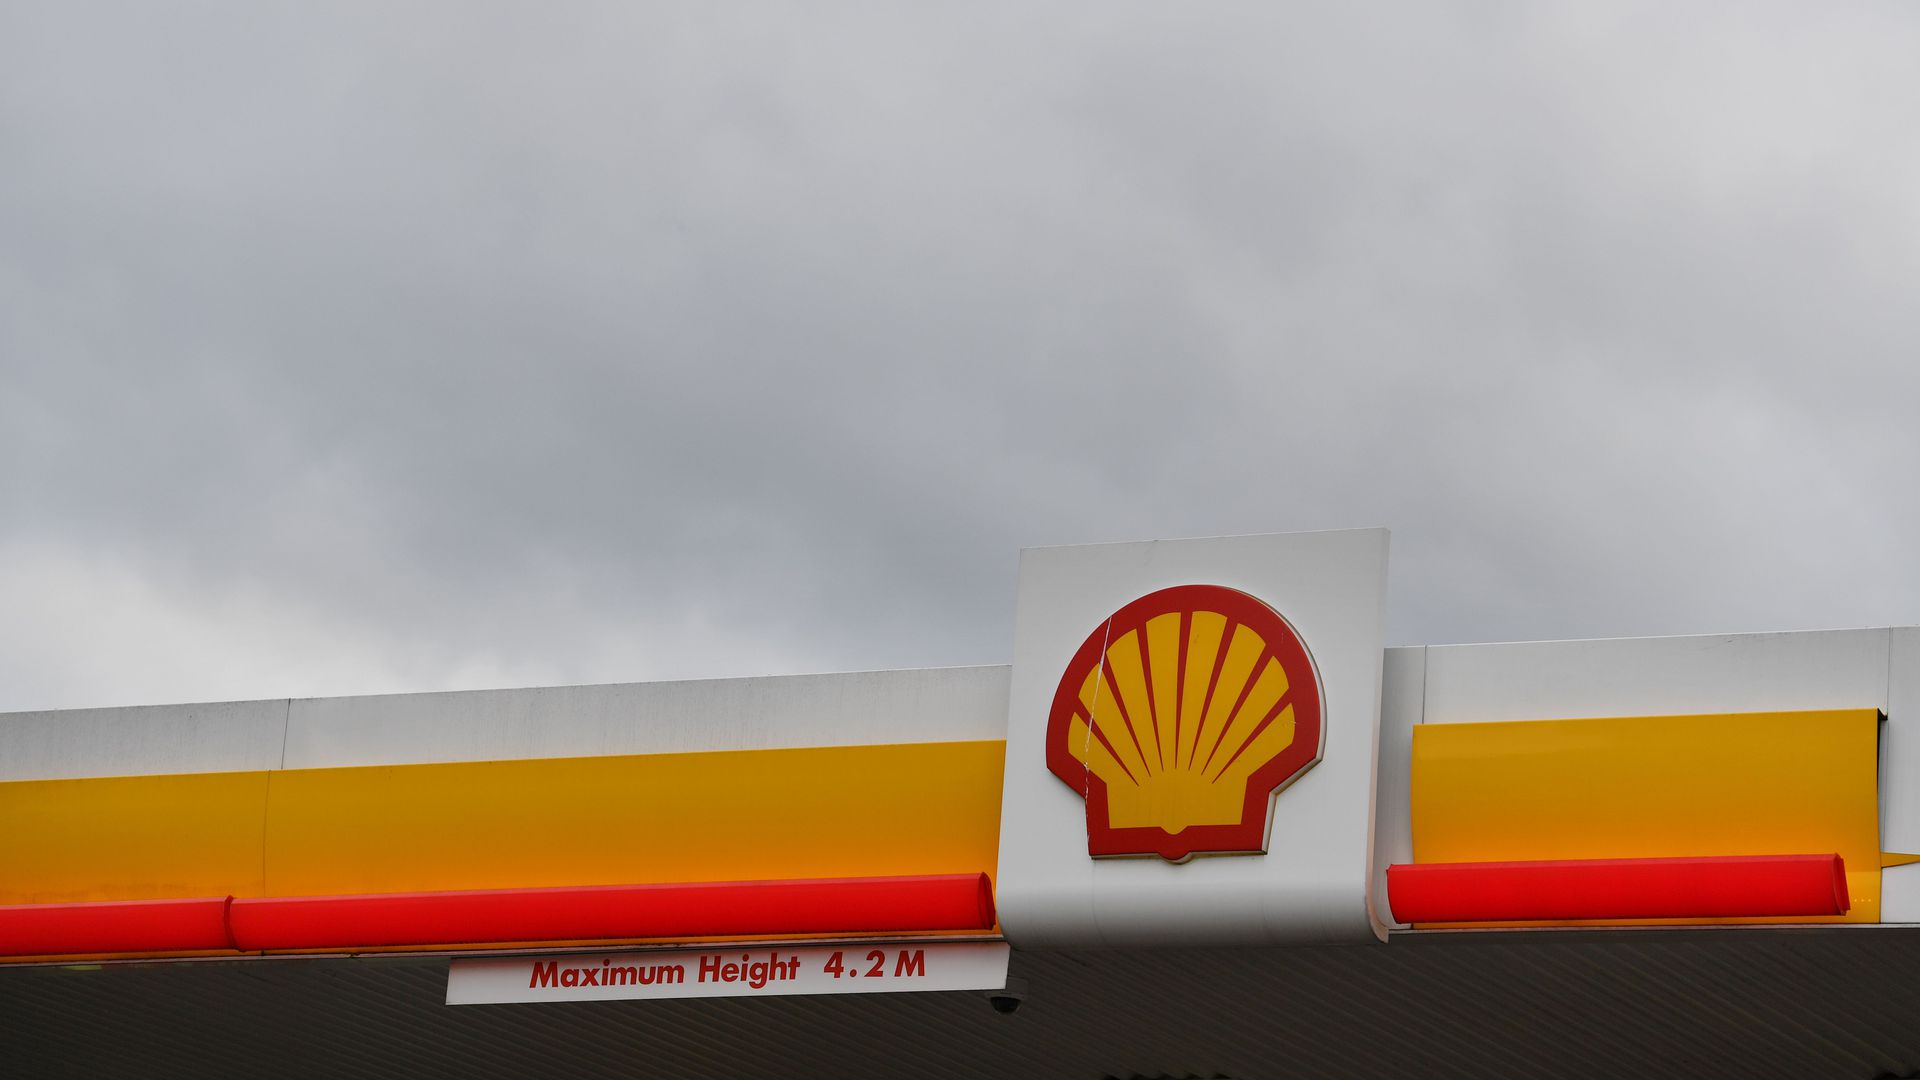 The logo of energy giant Royal Dutch Shell.